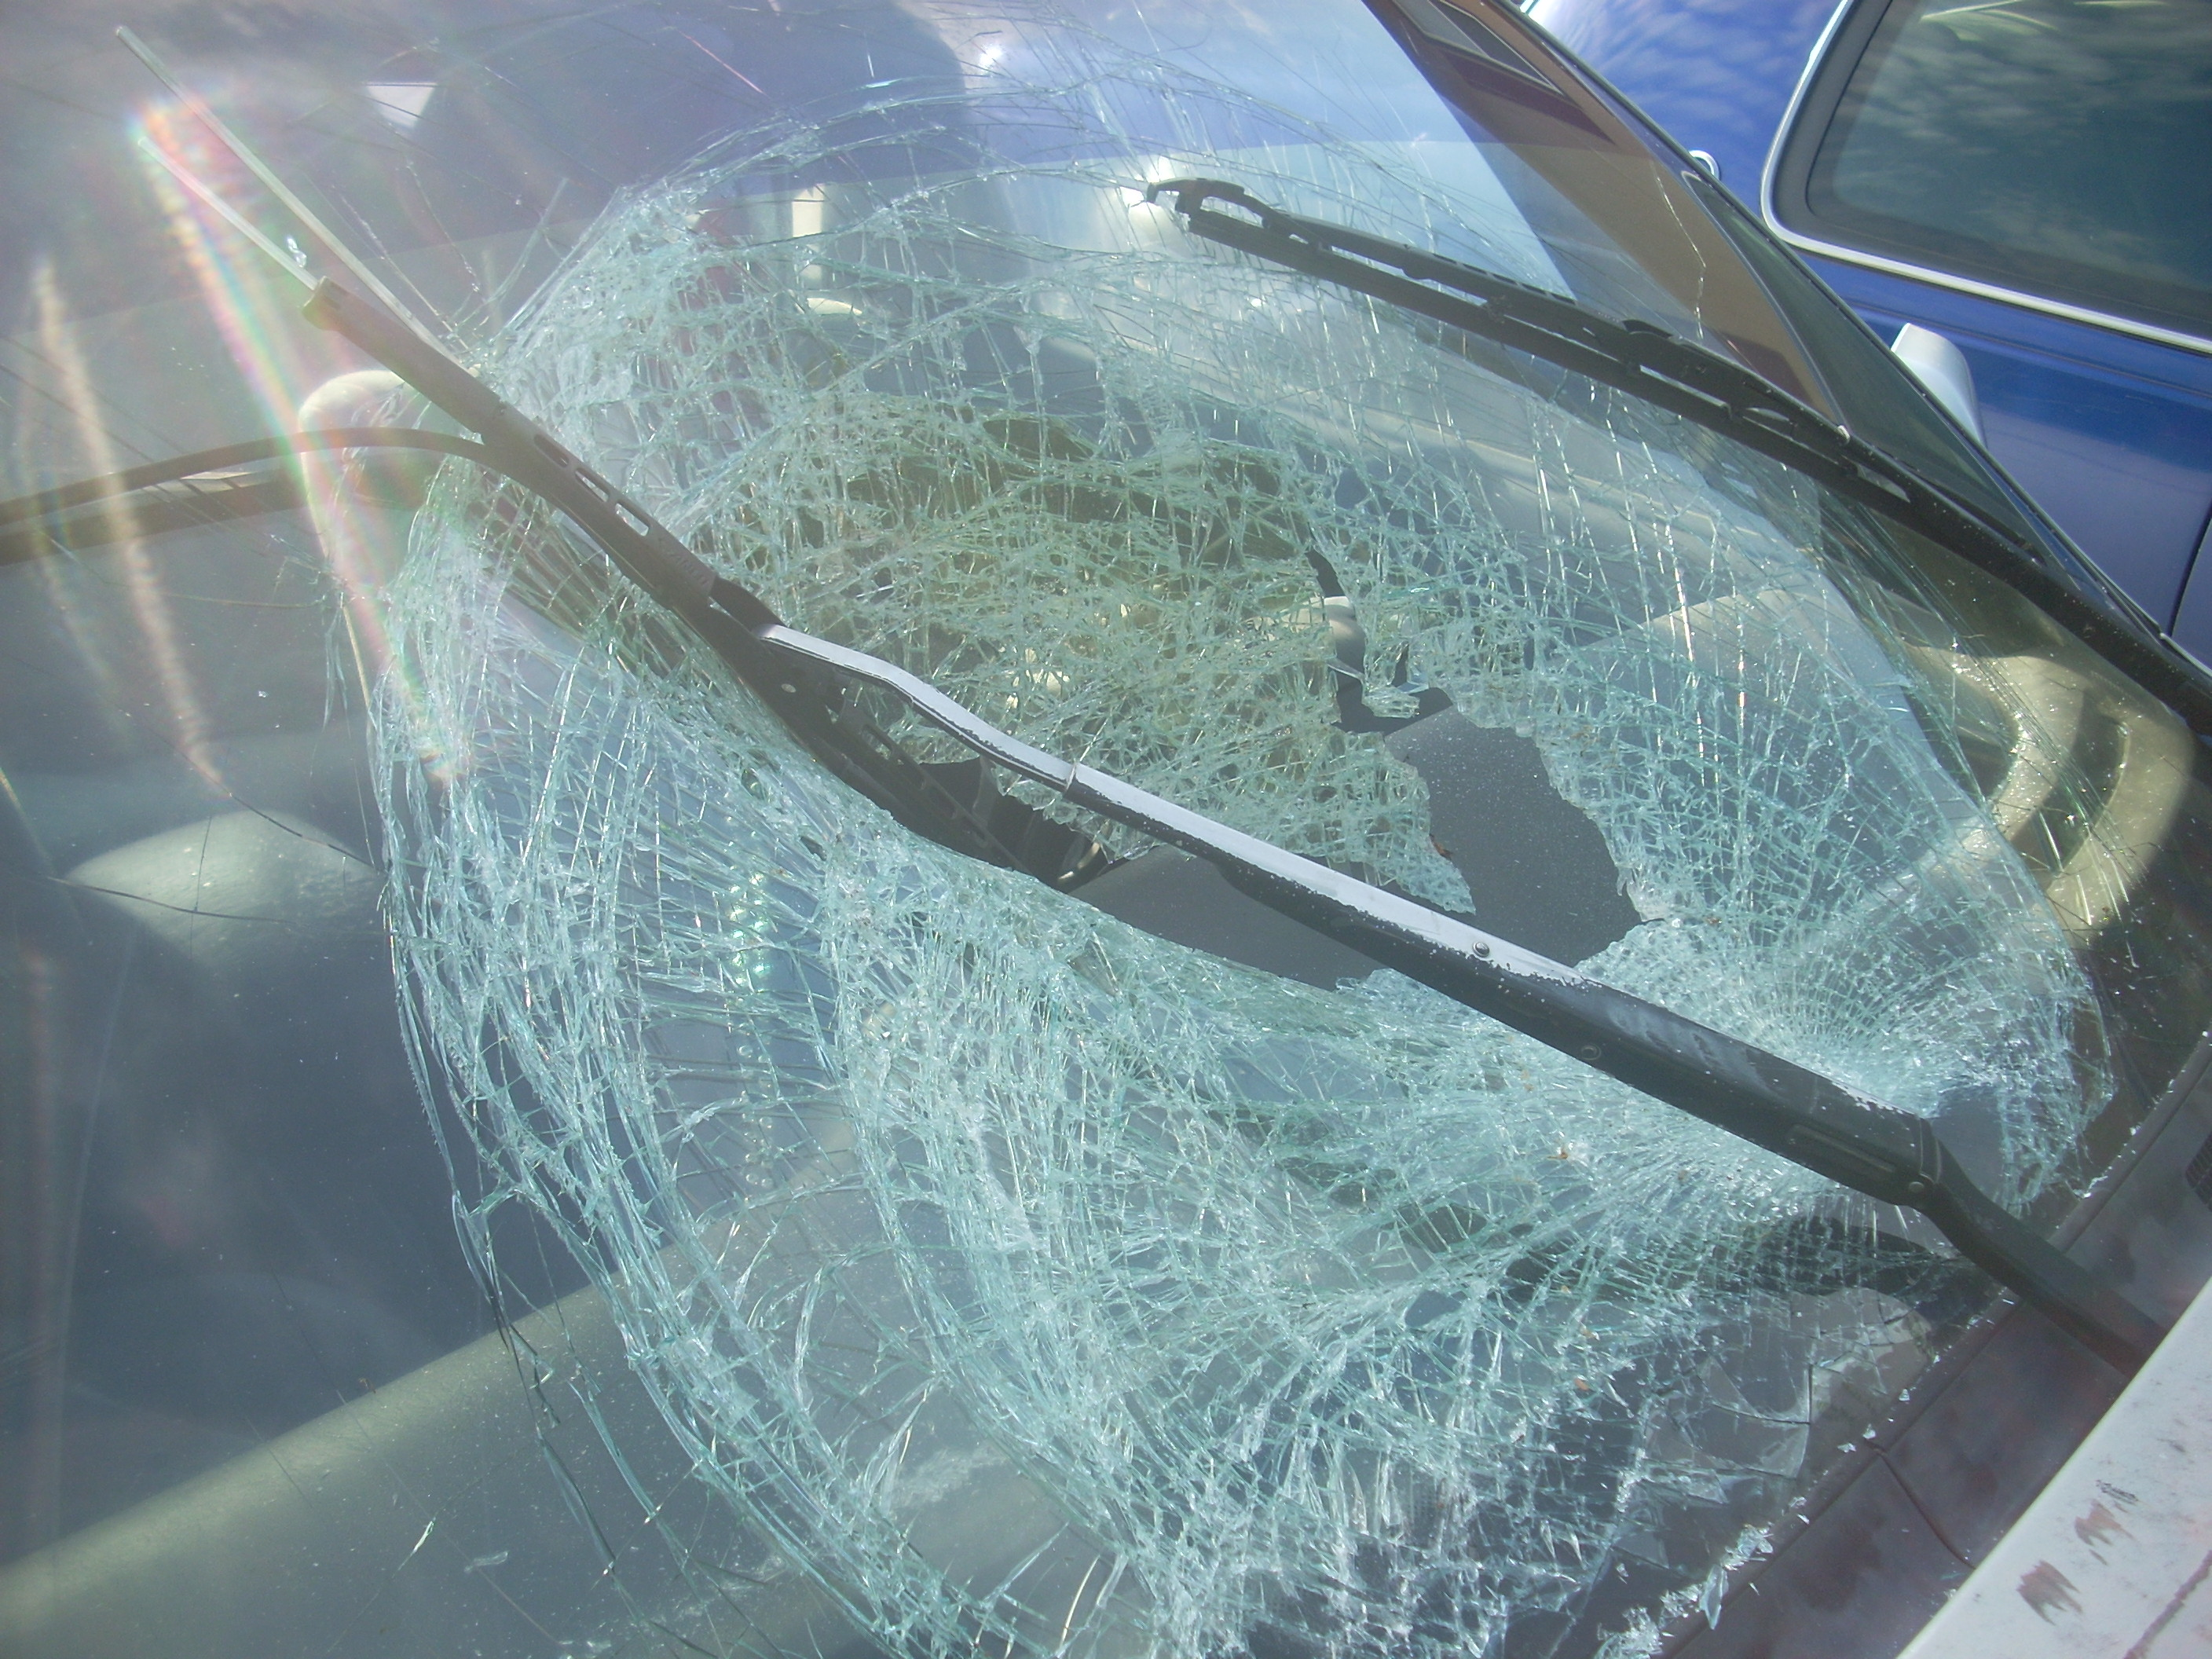 Photo of broken windshield from Fayetteville police